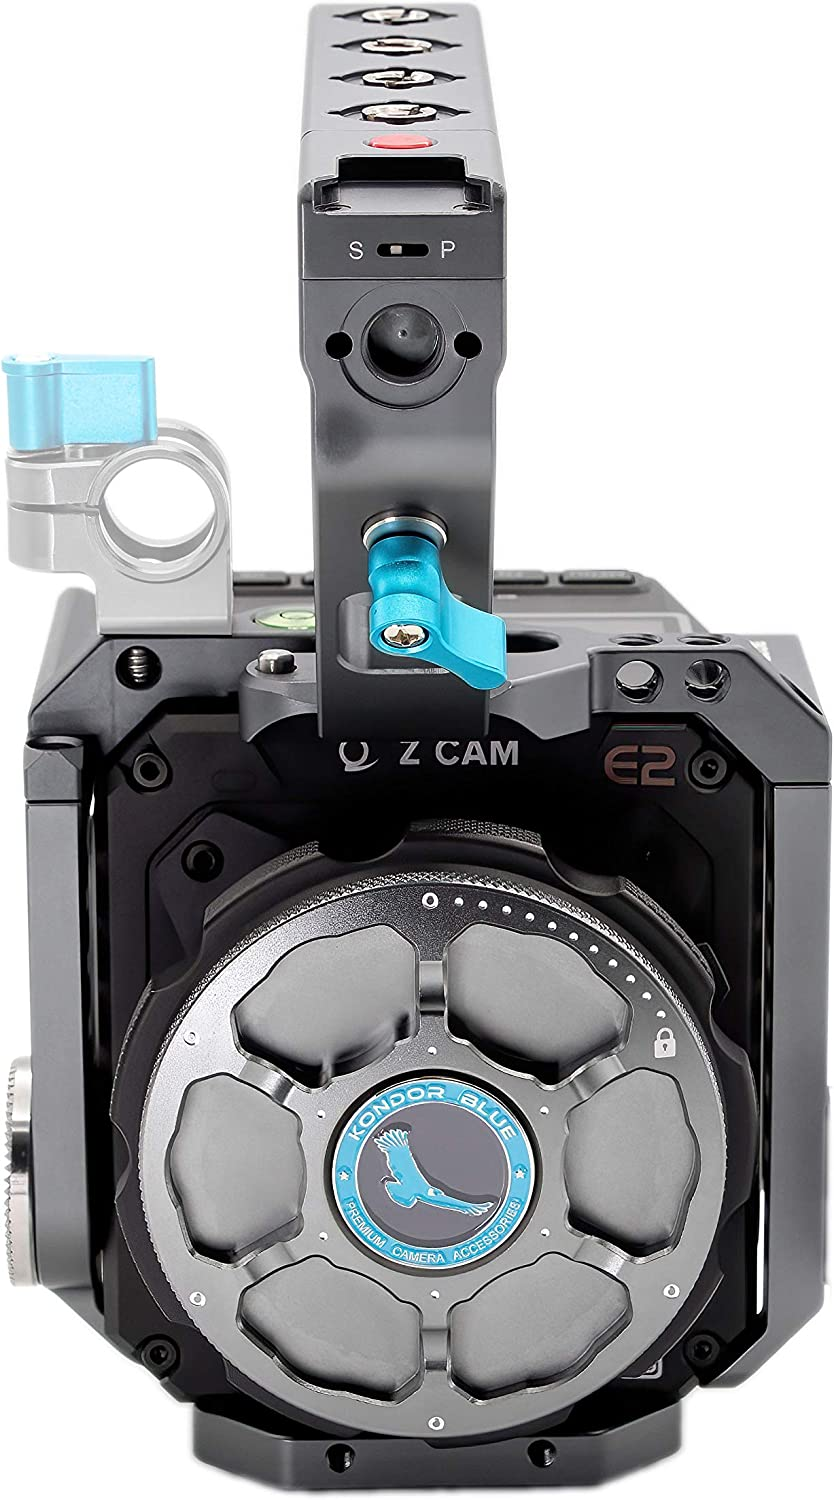 Rosette 15mm Rod NATO Rails KONDOR BLUE Z Cam Flagship Cage Rig with LANC REC Top Handle for Z Cam S6 F6 F8 Space Gray Baseplate and Optional T5 SSD Holder. Bubble Leveler